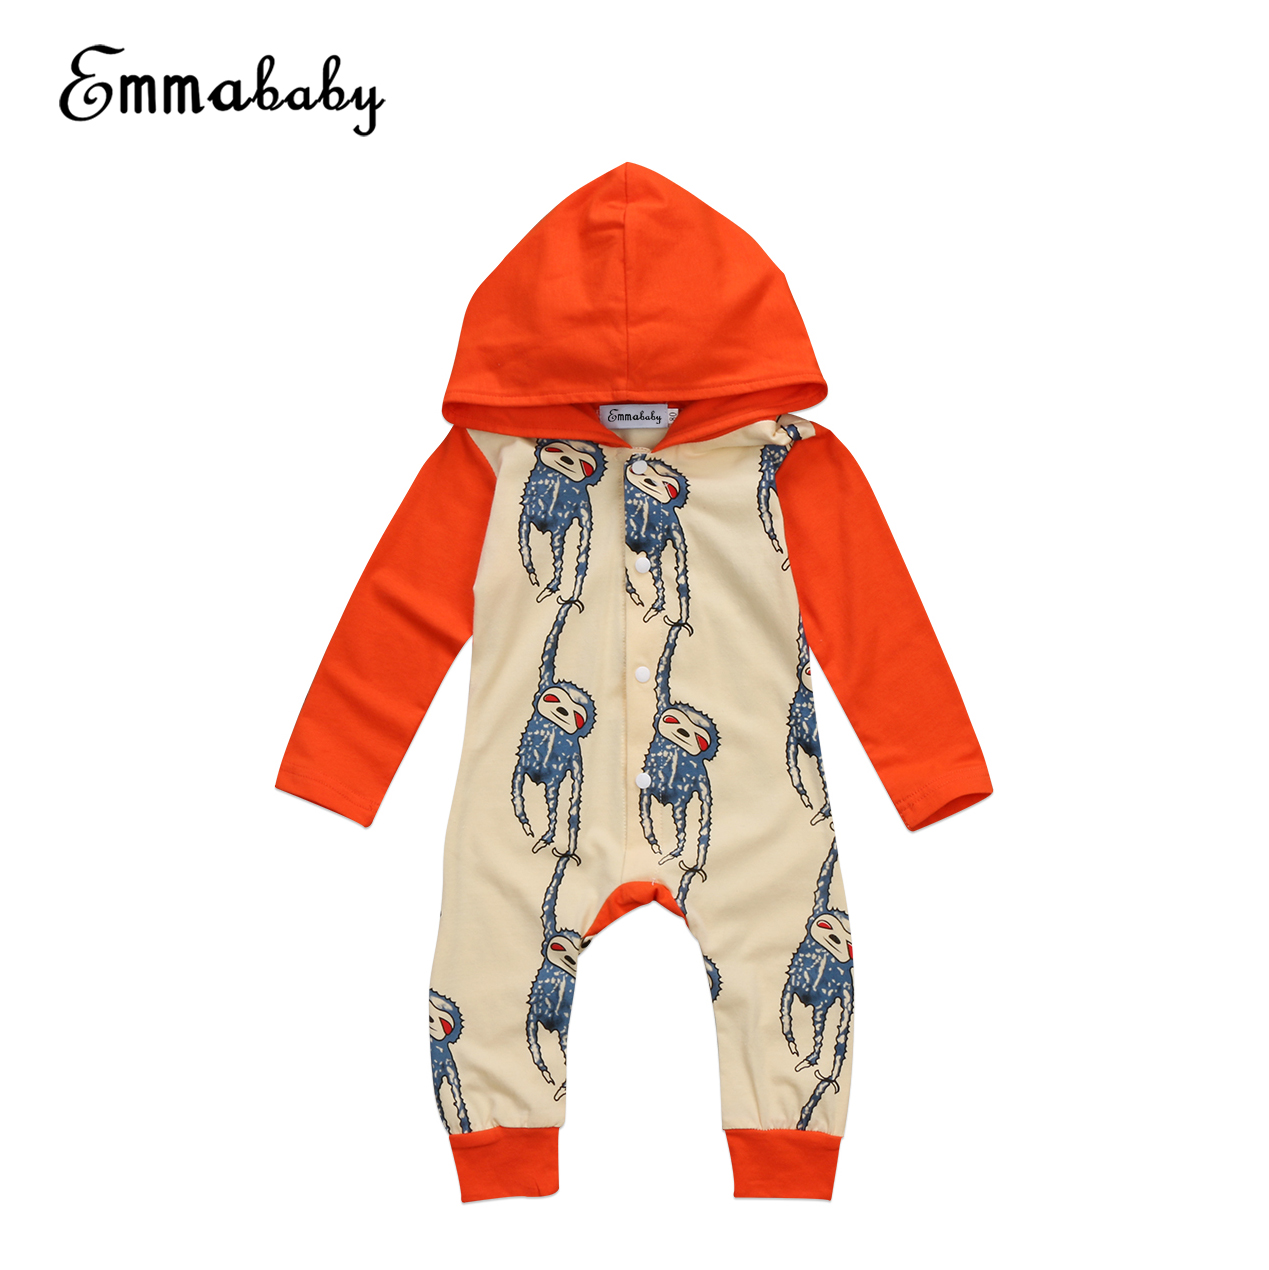 INfant Newborn Baby Boy Girl Hooded Romper Long Sleeve Cute Monkey Print 2017 New Autumn Spring Jumpsuit Clothes Outfits